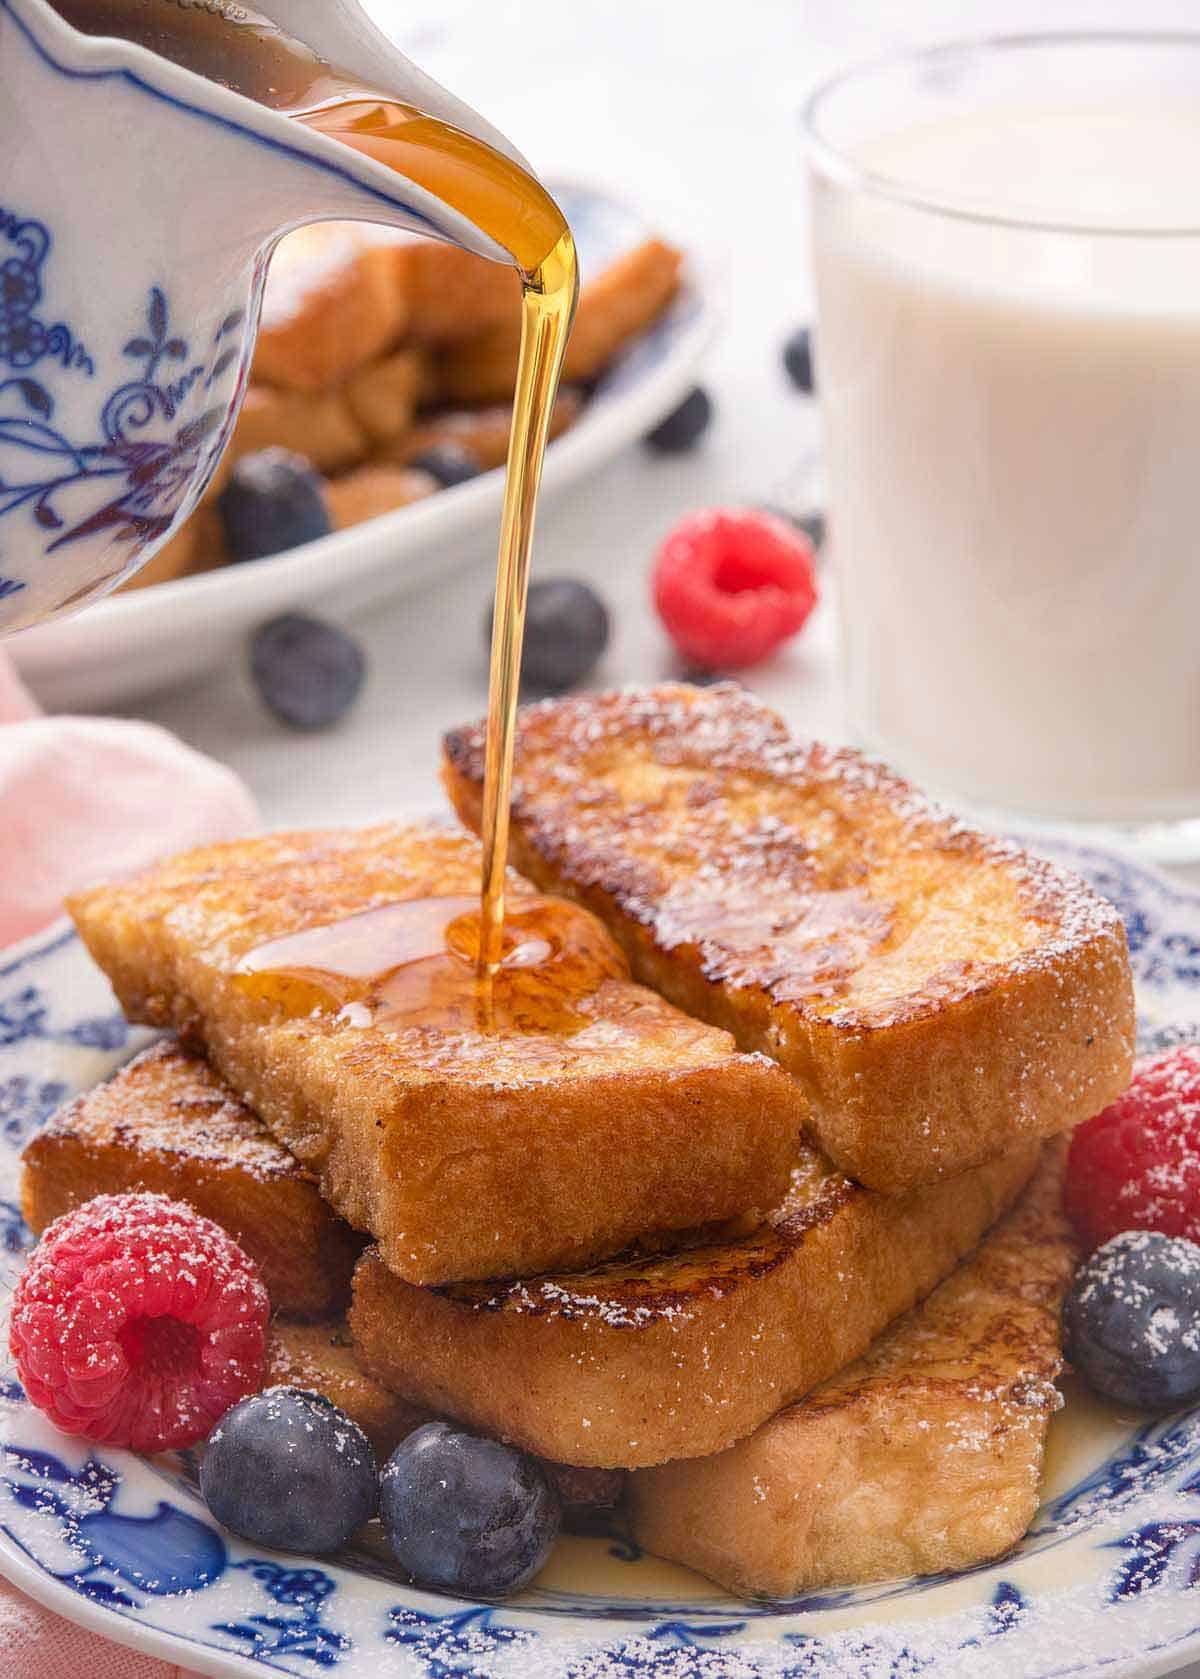 Maple syrup being poured on top of a stack of French toast sticks with fresh berries beside them.